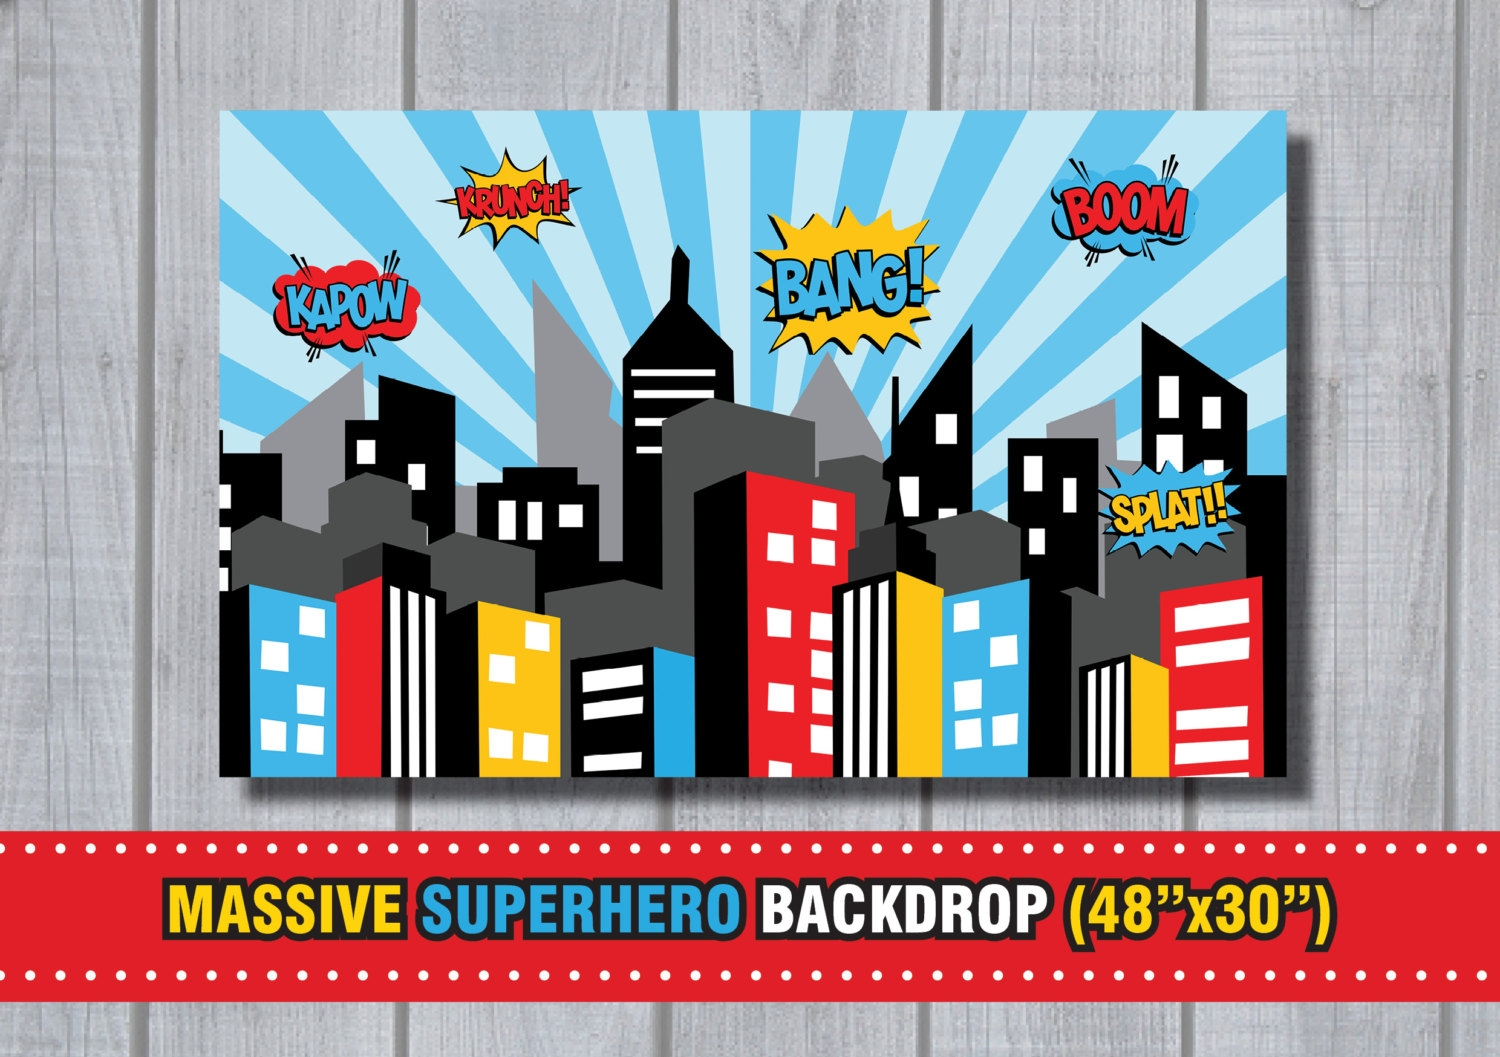 Superman city background clipart png black and white stock Superman city background clipart - ClipartFest png black and white stock